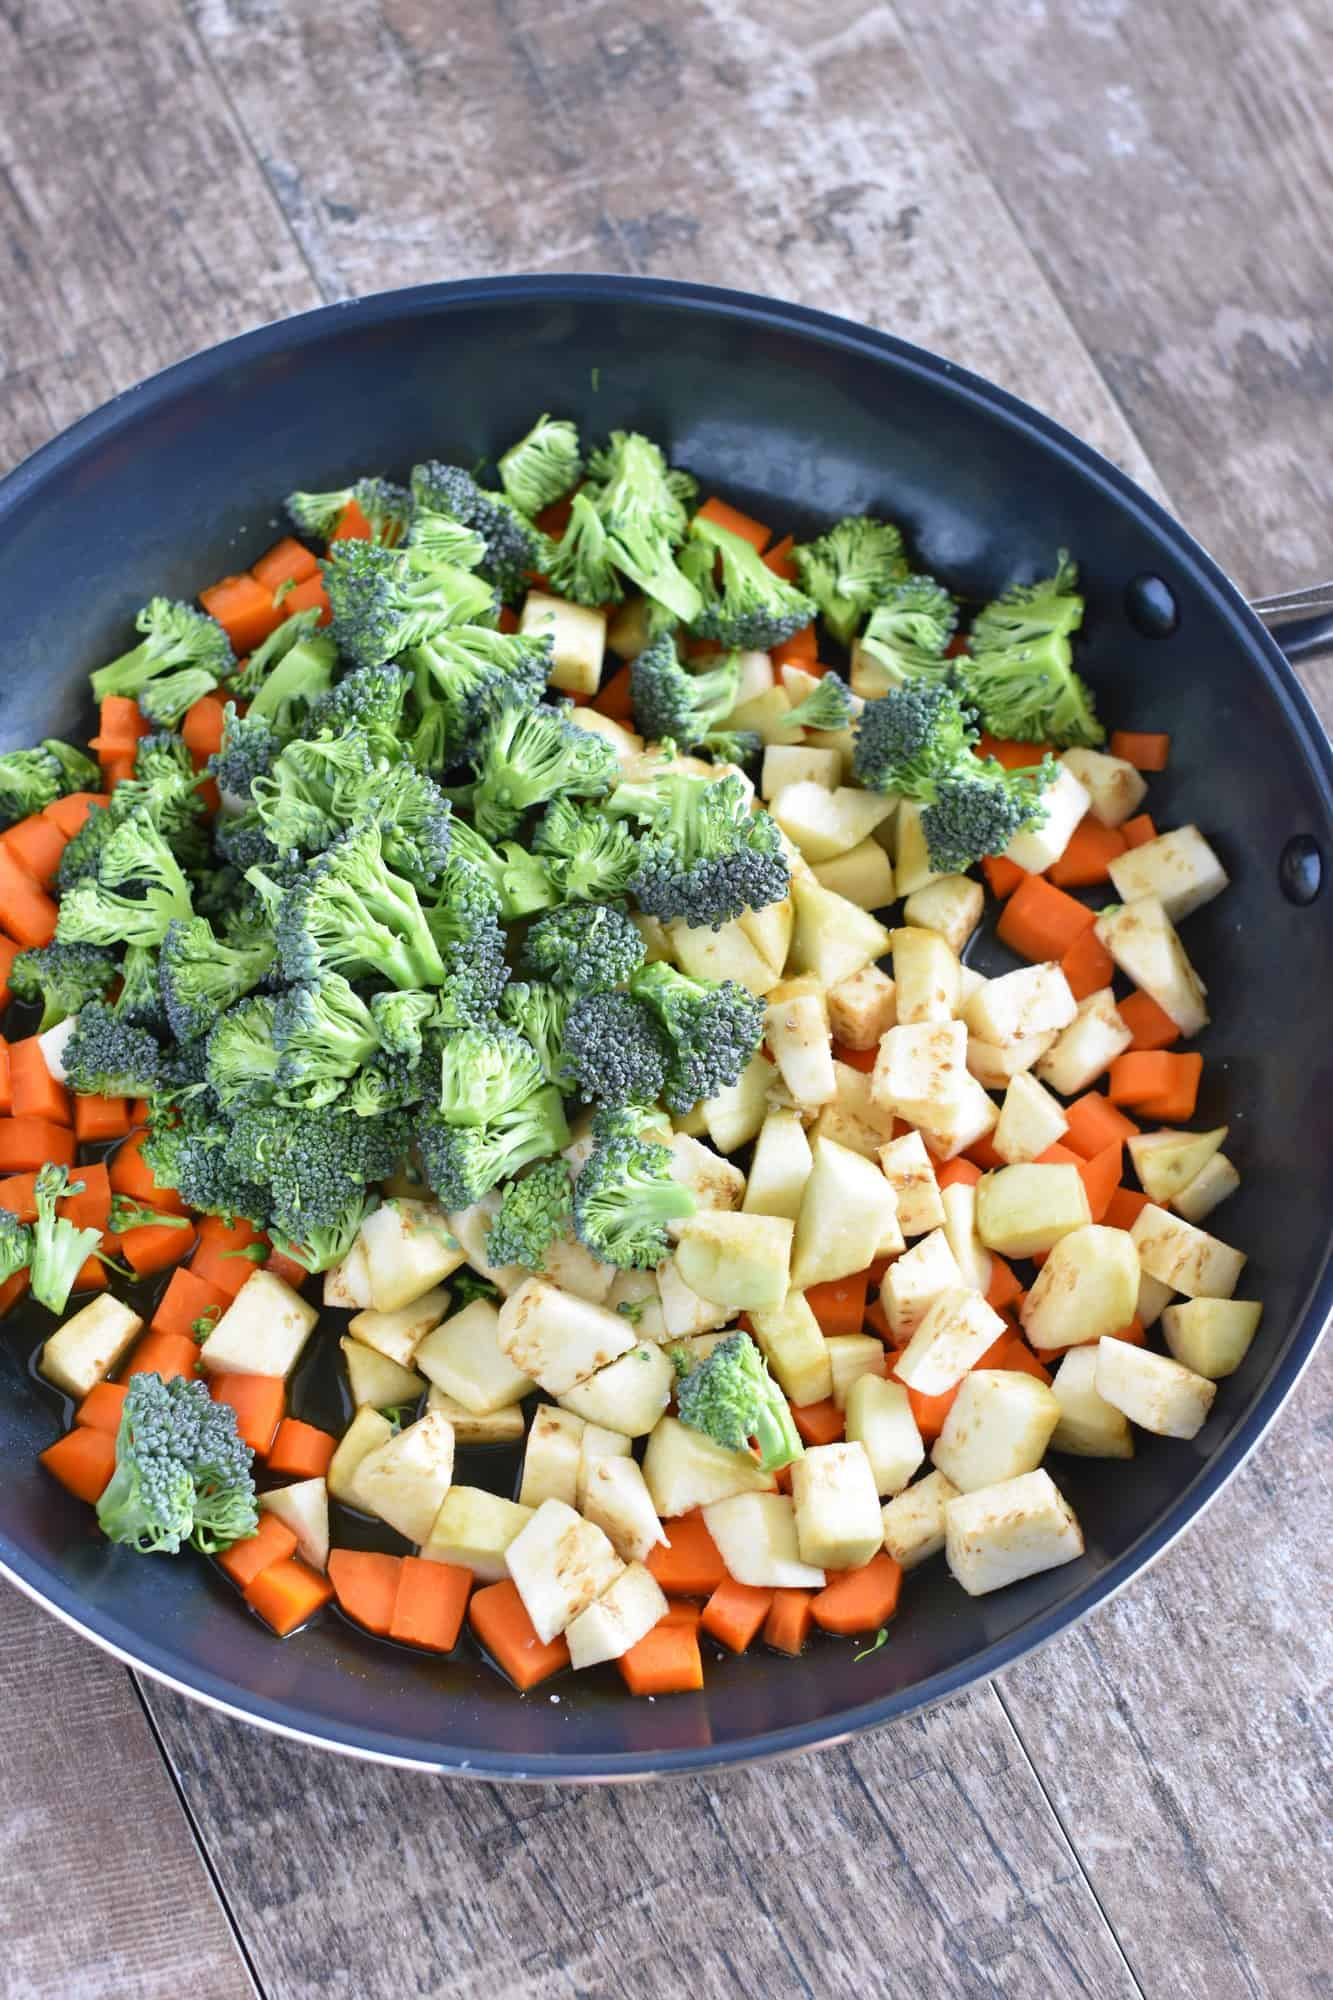 broccoli and eggplant added to the carrots in the skillet